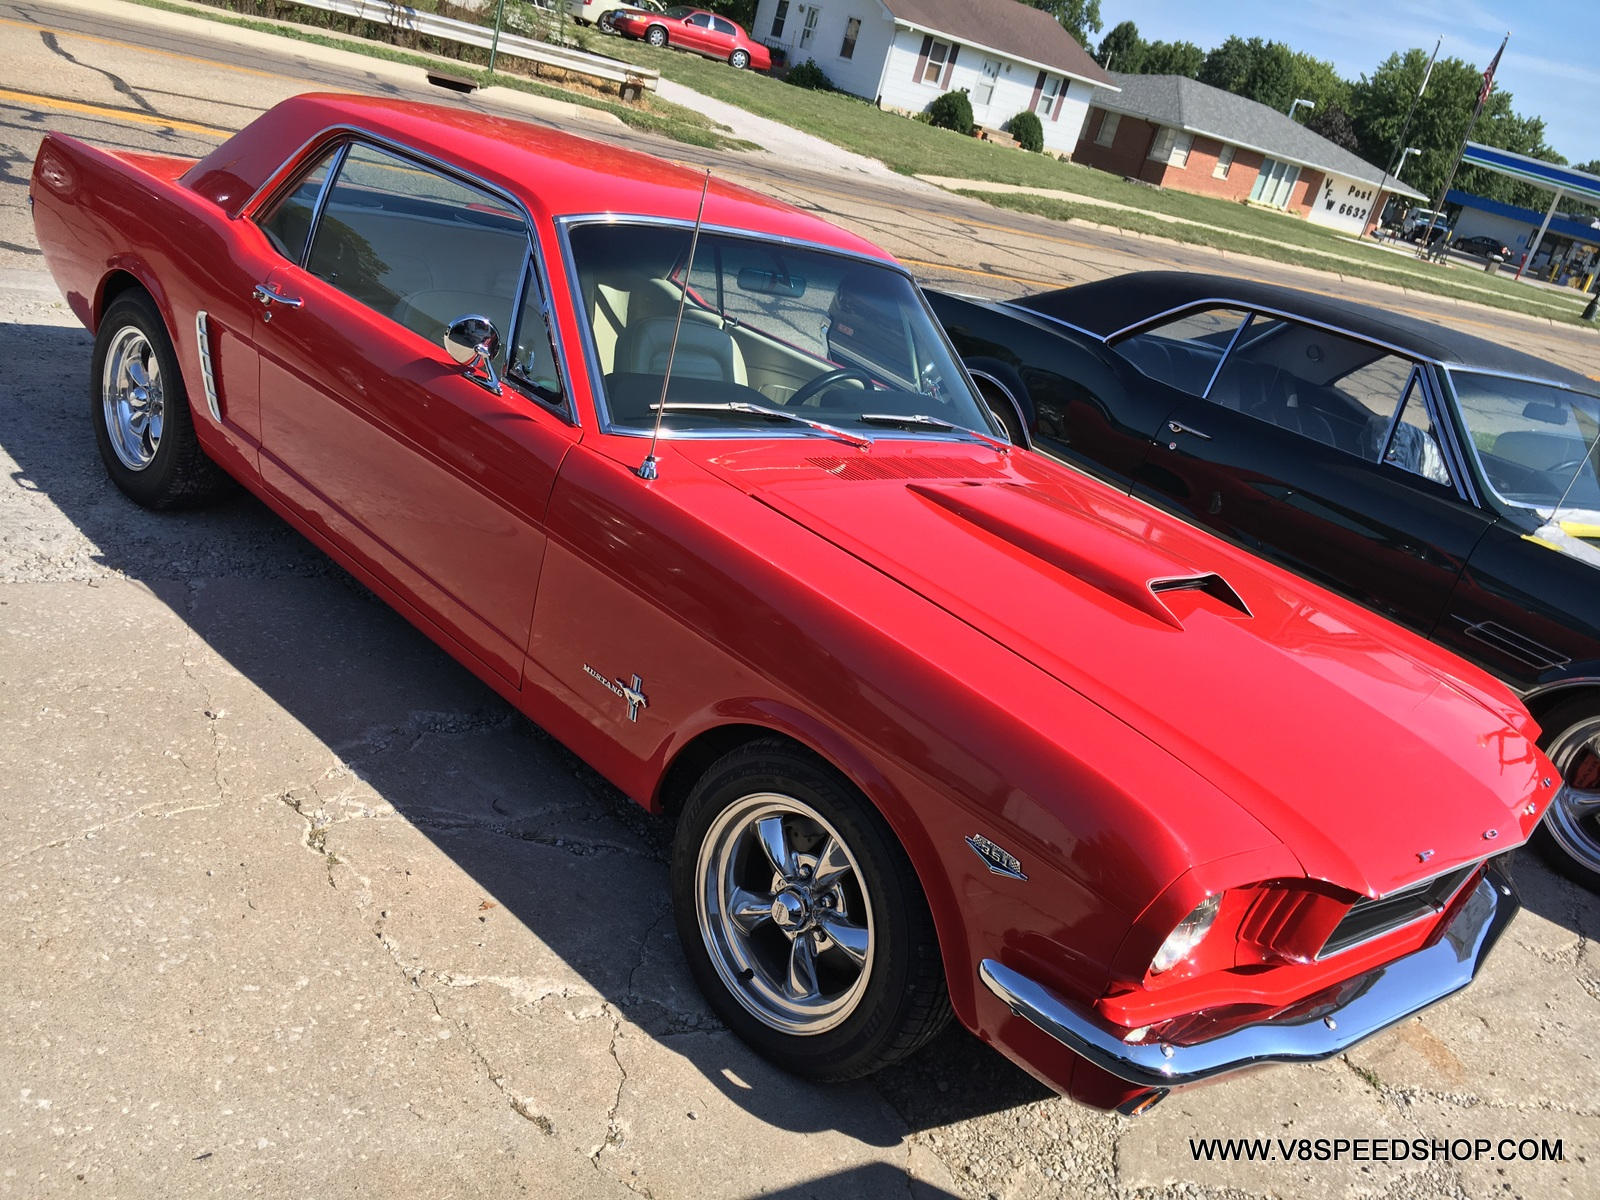 1965 Ford Mustang Maintenance and Upgrades at V8 Speed and Resto Shop